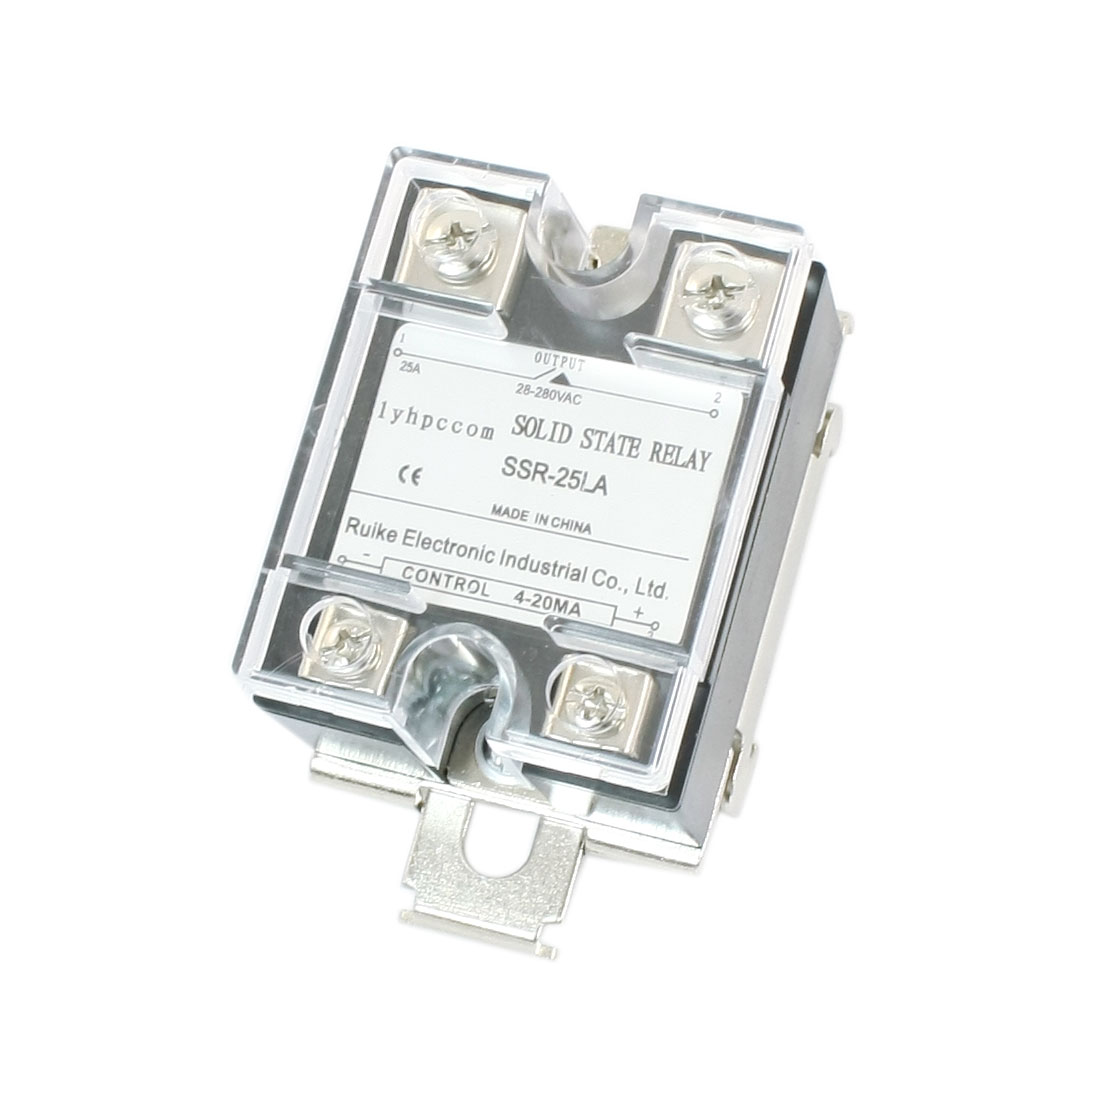 4-20mA Input AC 28-280V 25A Output 4 Terminal Screw Single Phase 35mm DIN Rail Socket SSR Solid State Relay w Clear Cover